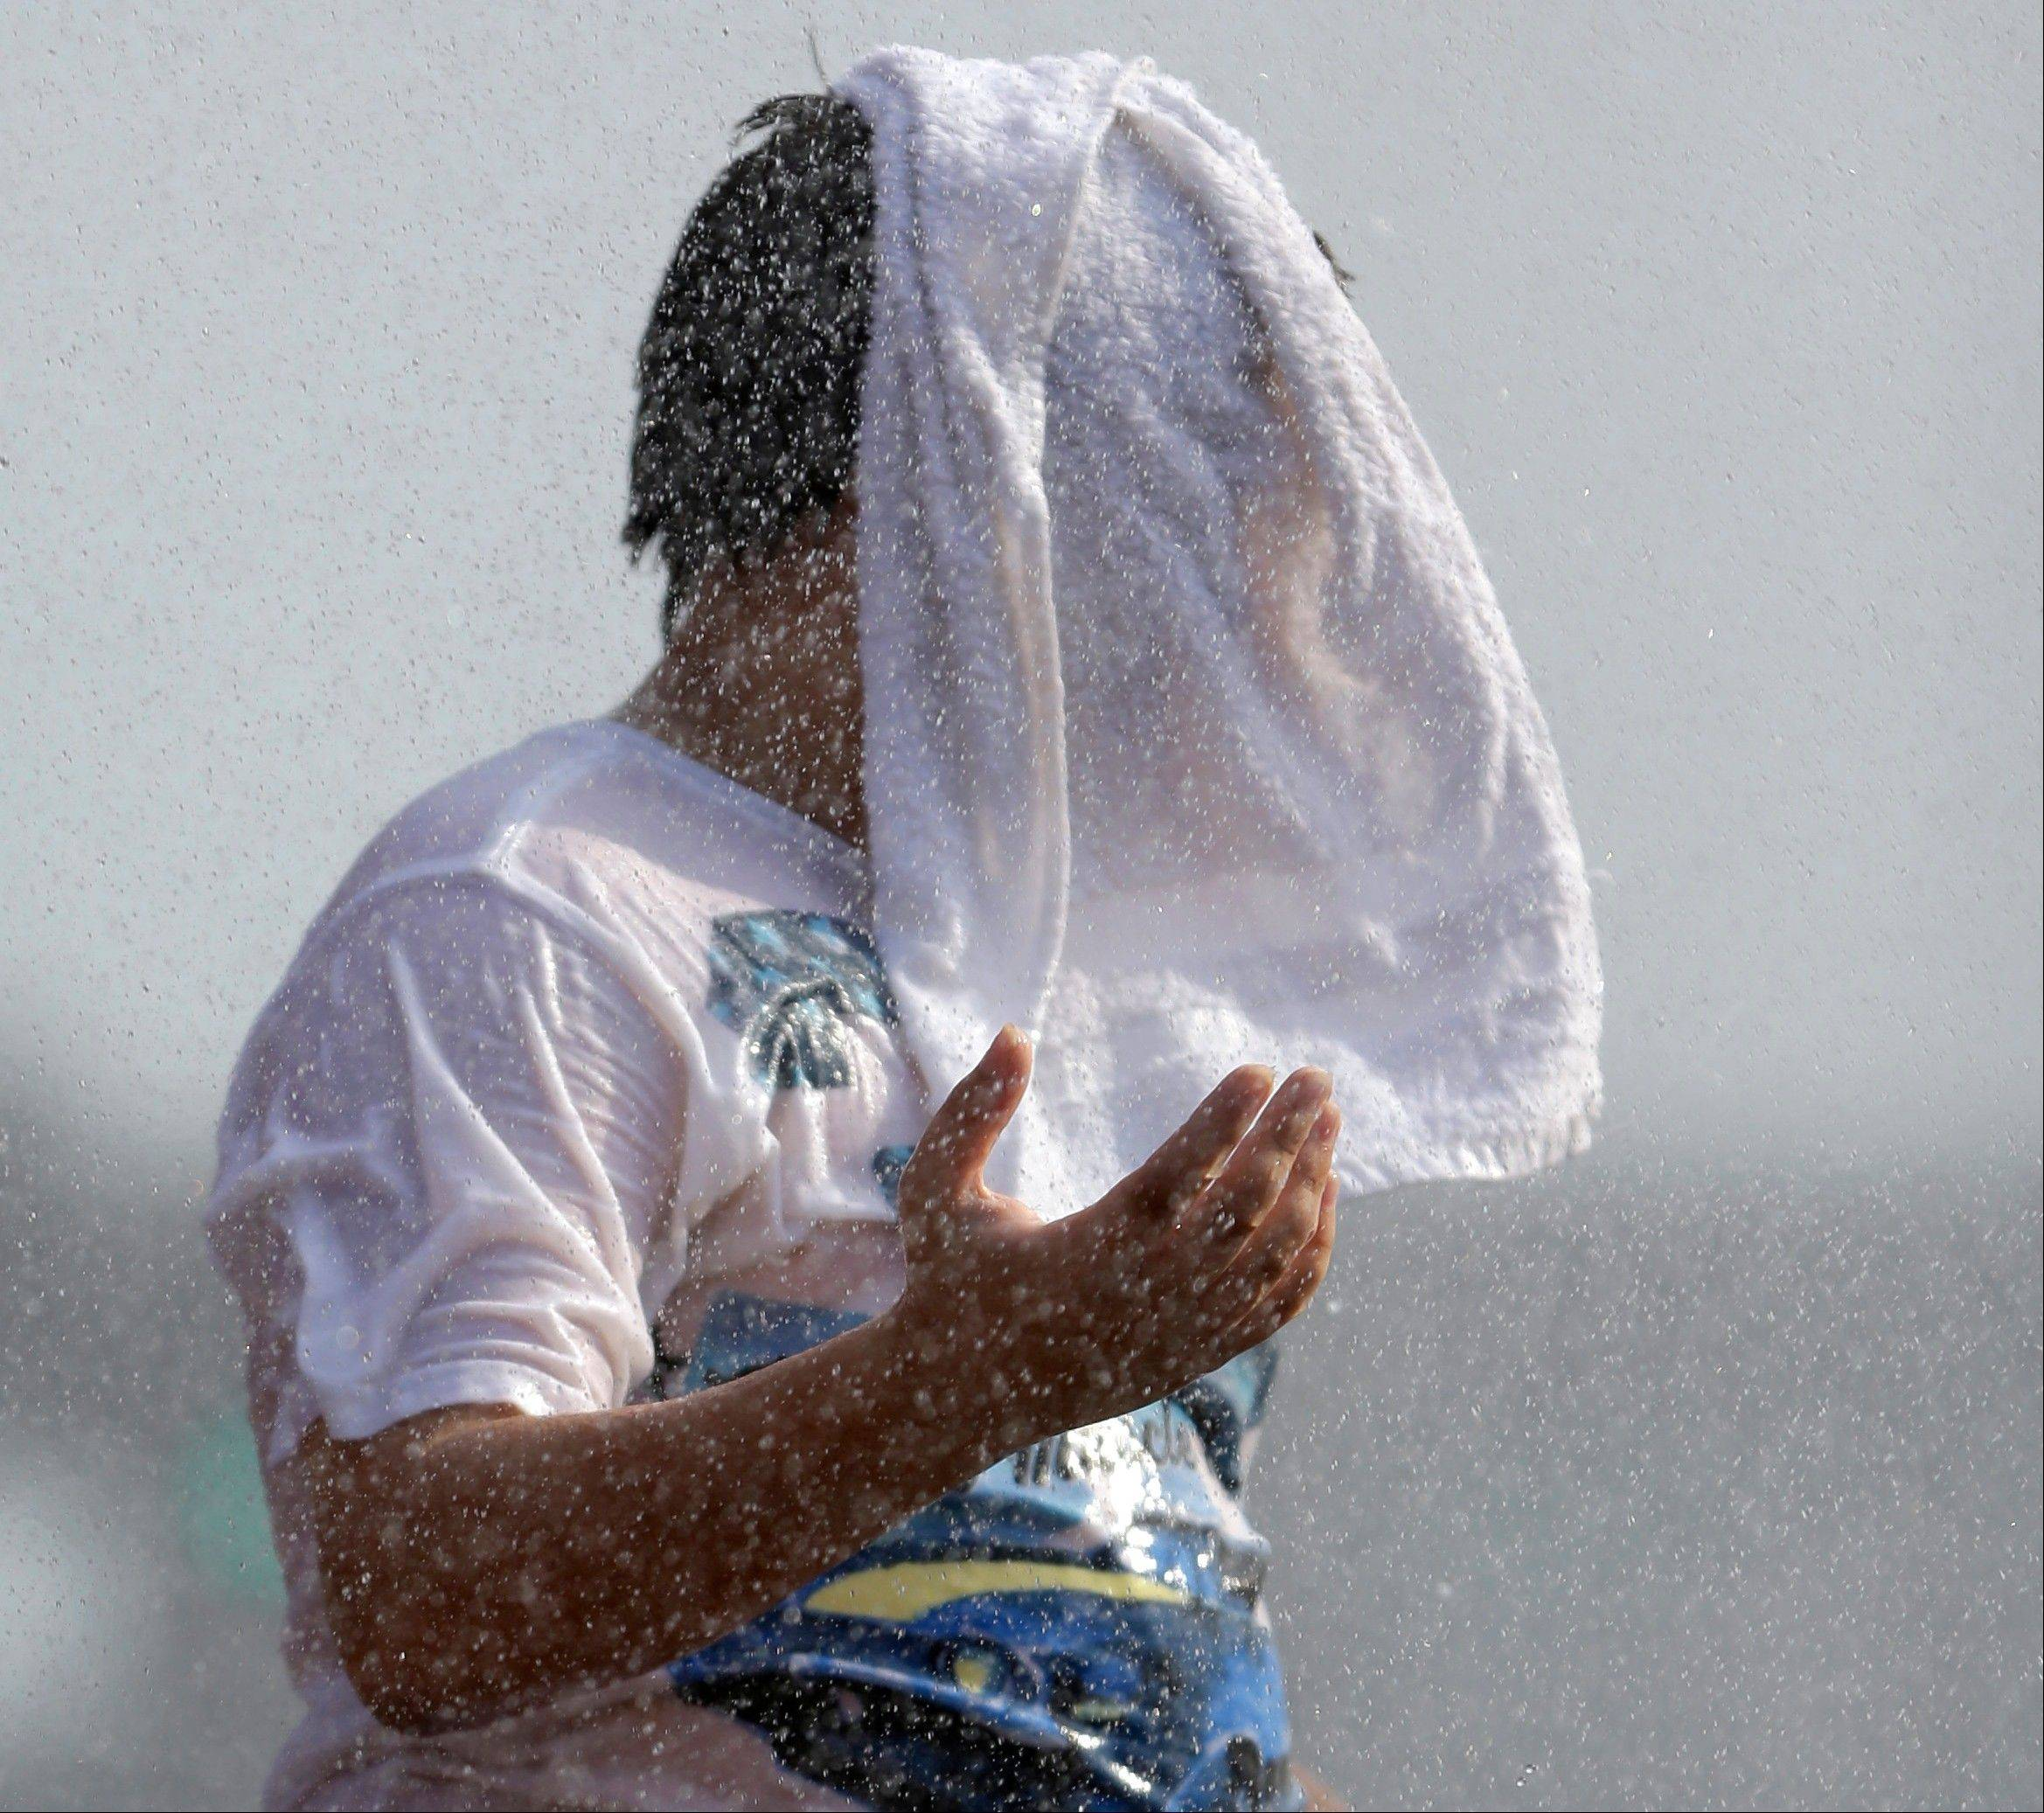 Federal meteorologists say America was deep fried in 2012, becoming the hottest year on record by far. Above, Timmy Benson wears a wet towel on his head as he cools off in a fountain outside Busch Stadium before a St. Louis Cardinals baseball game July 6.